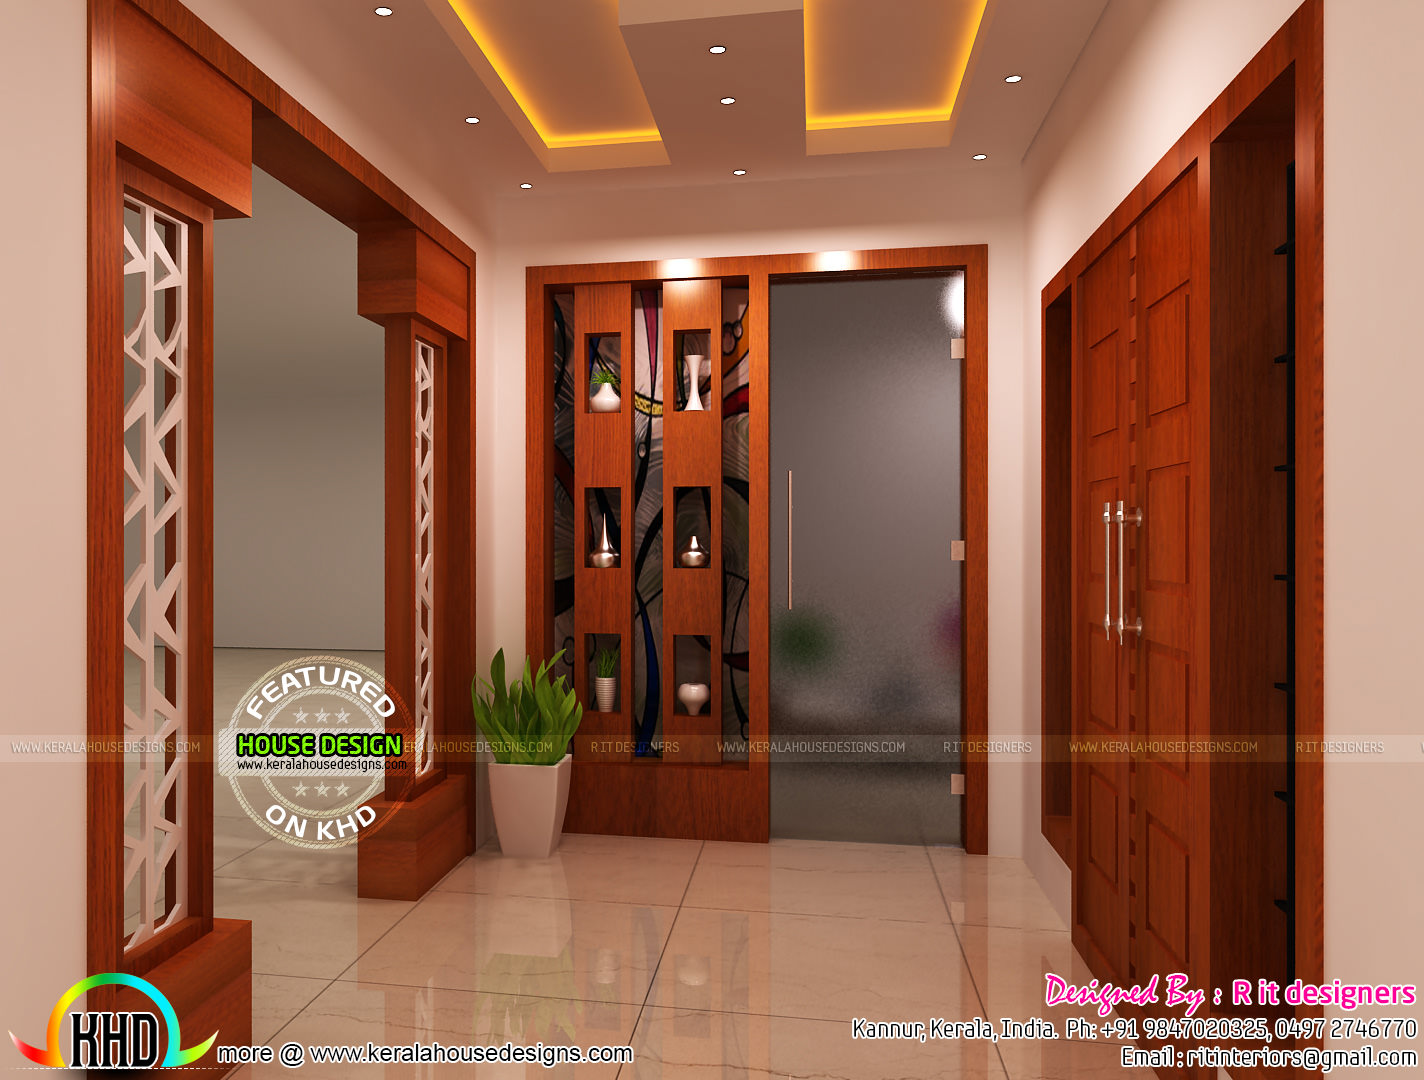 Bedroom kitchen living and foyer interiors kerala home for Foyer designs for apartments india